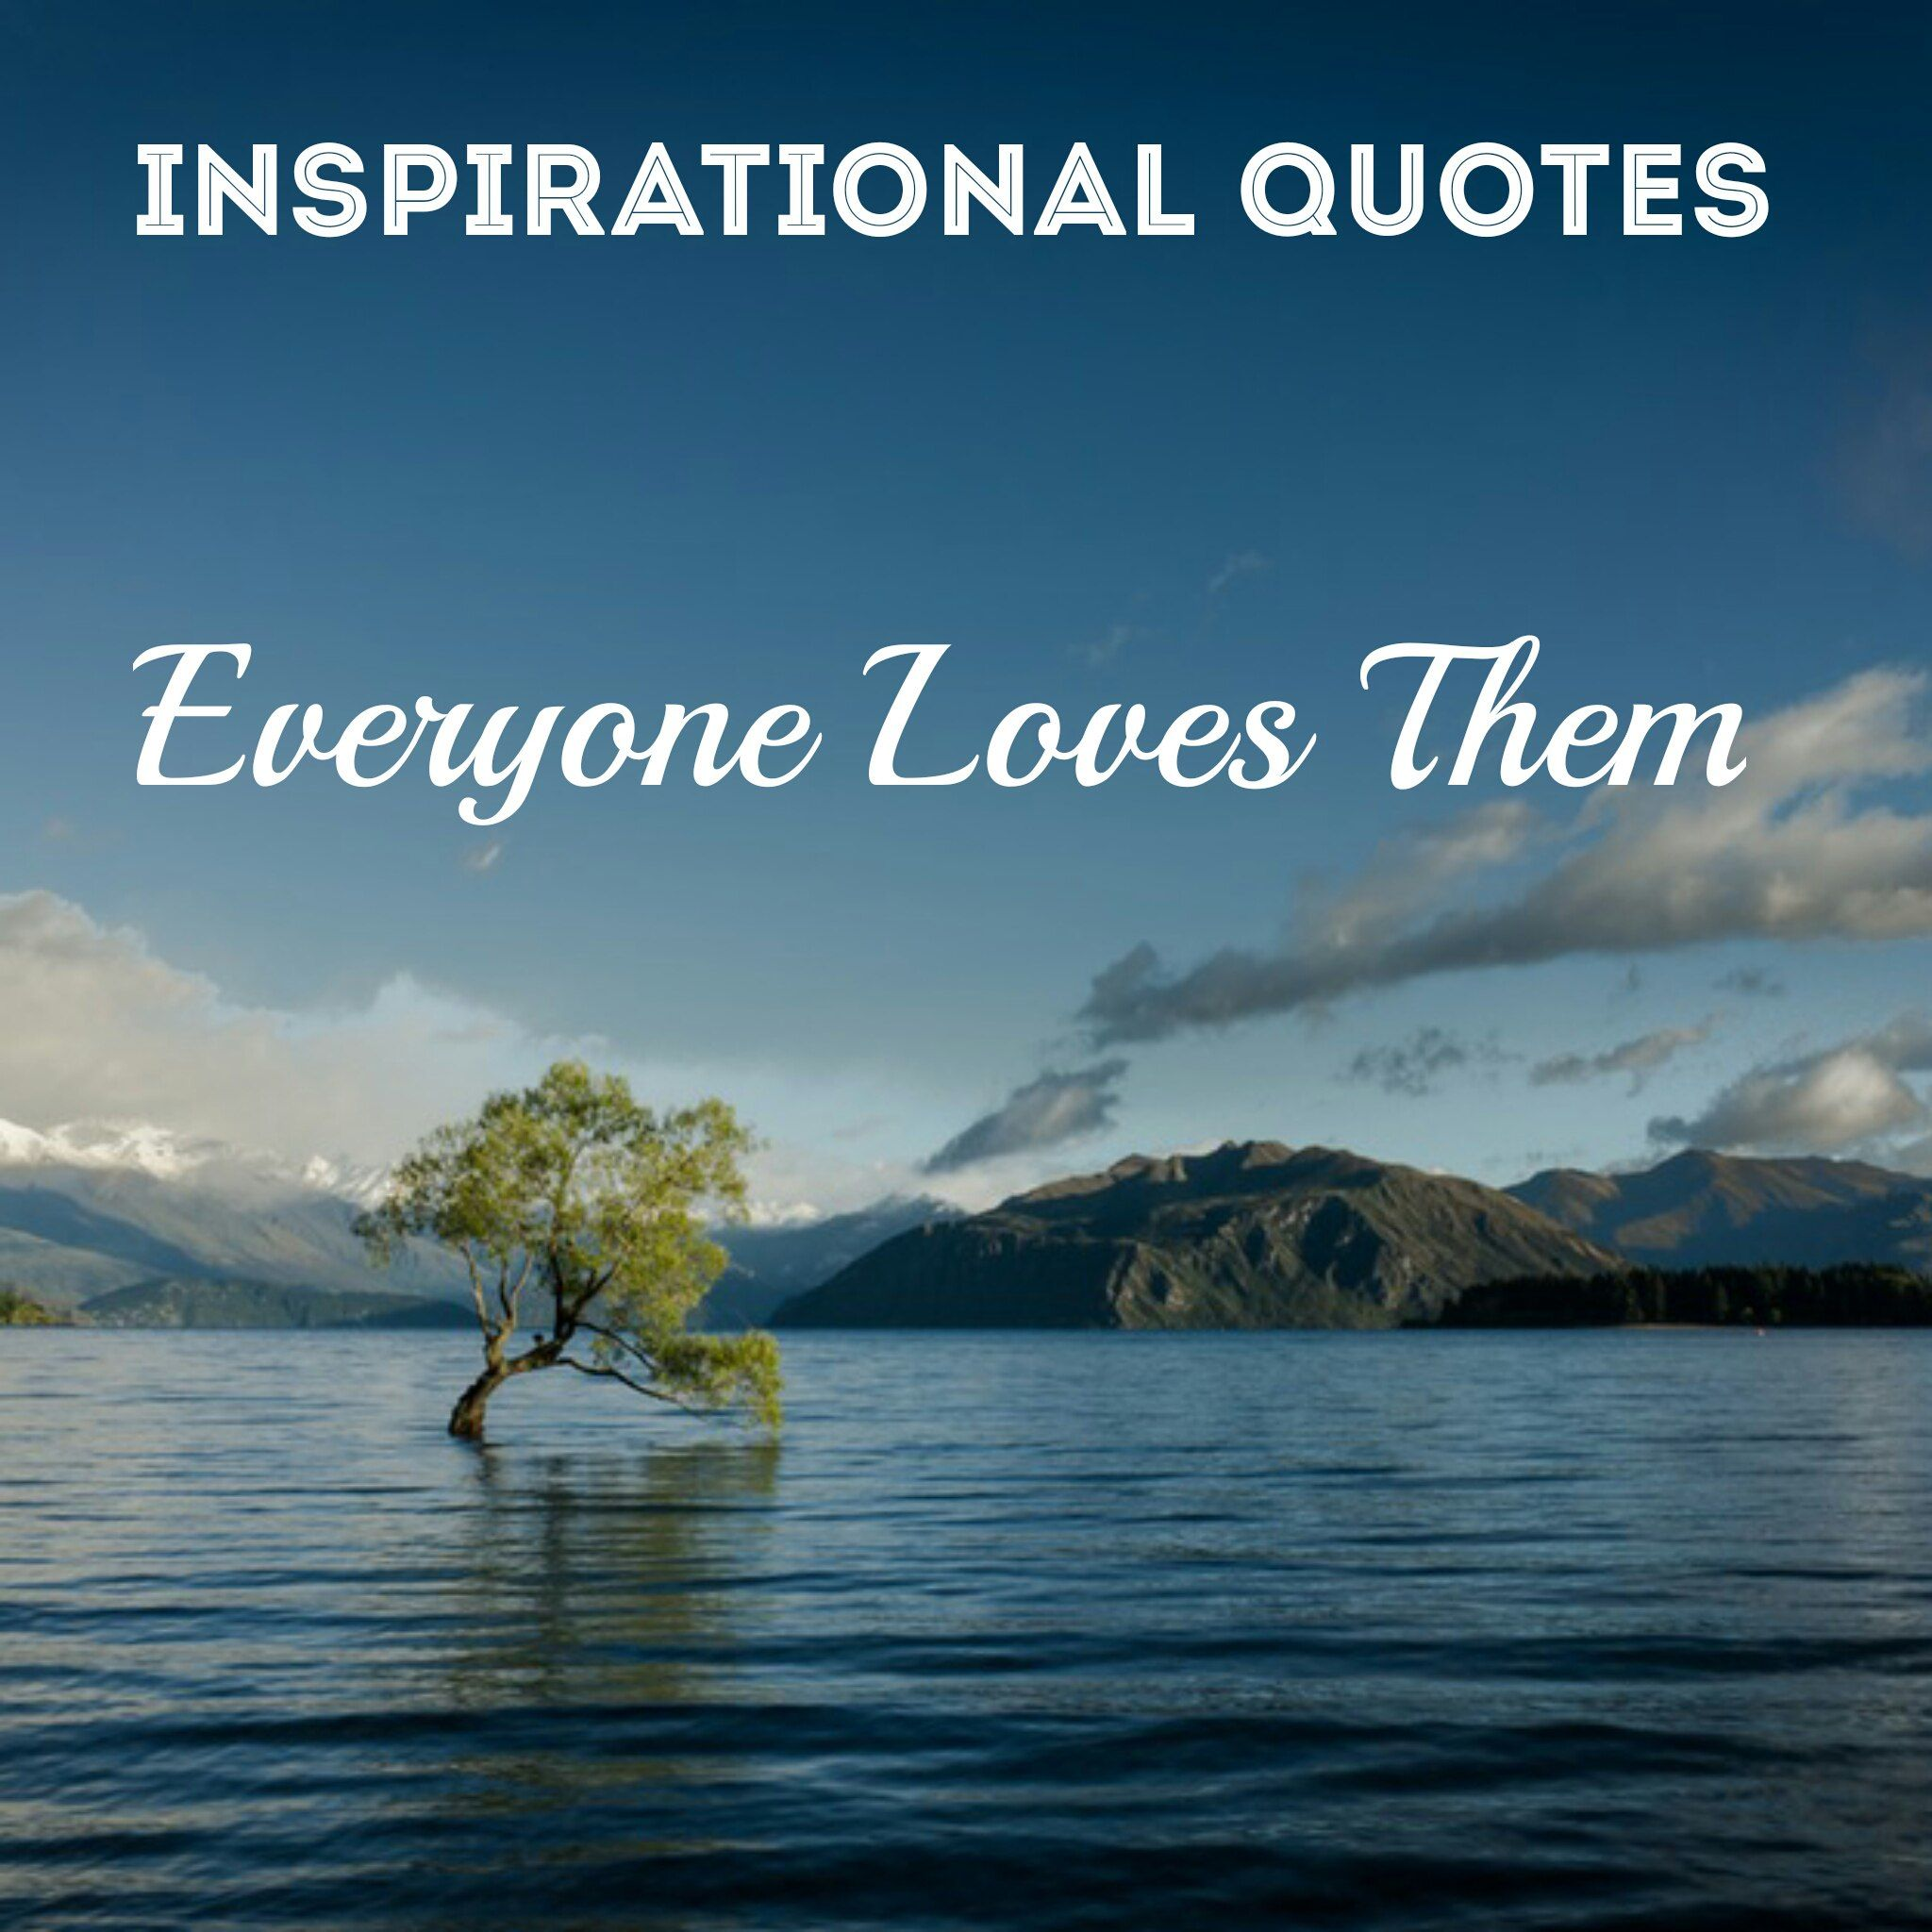 Motivational Sayings 154 Best Inspirational Quotes & Sayings Of All Time